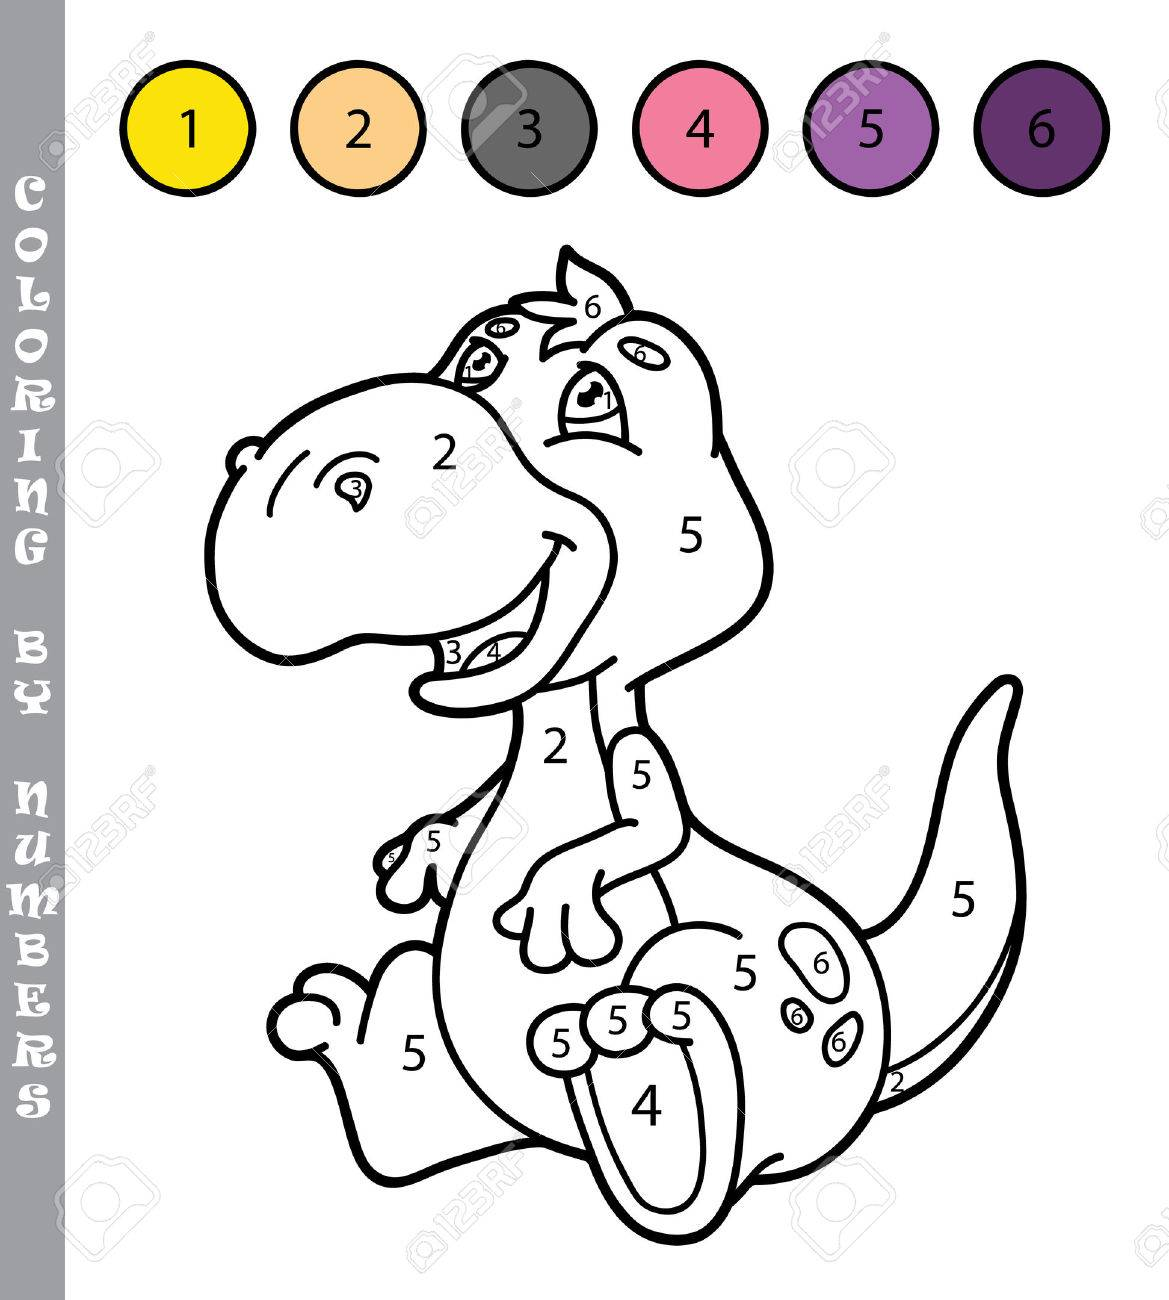 Funny Coloring By Numbers Game Vector Illustration With Cartoon Dino For